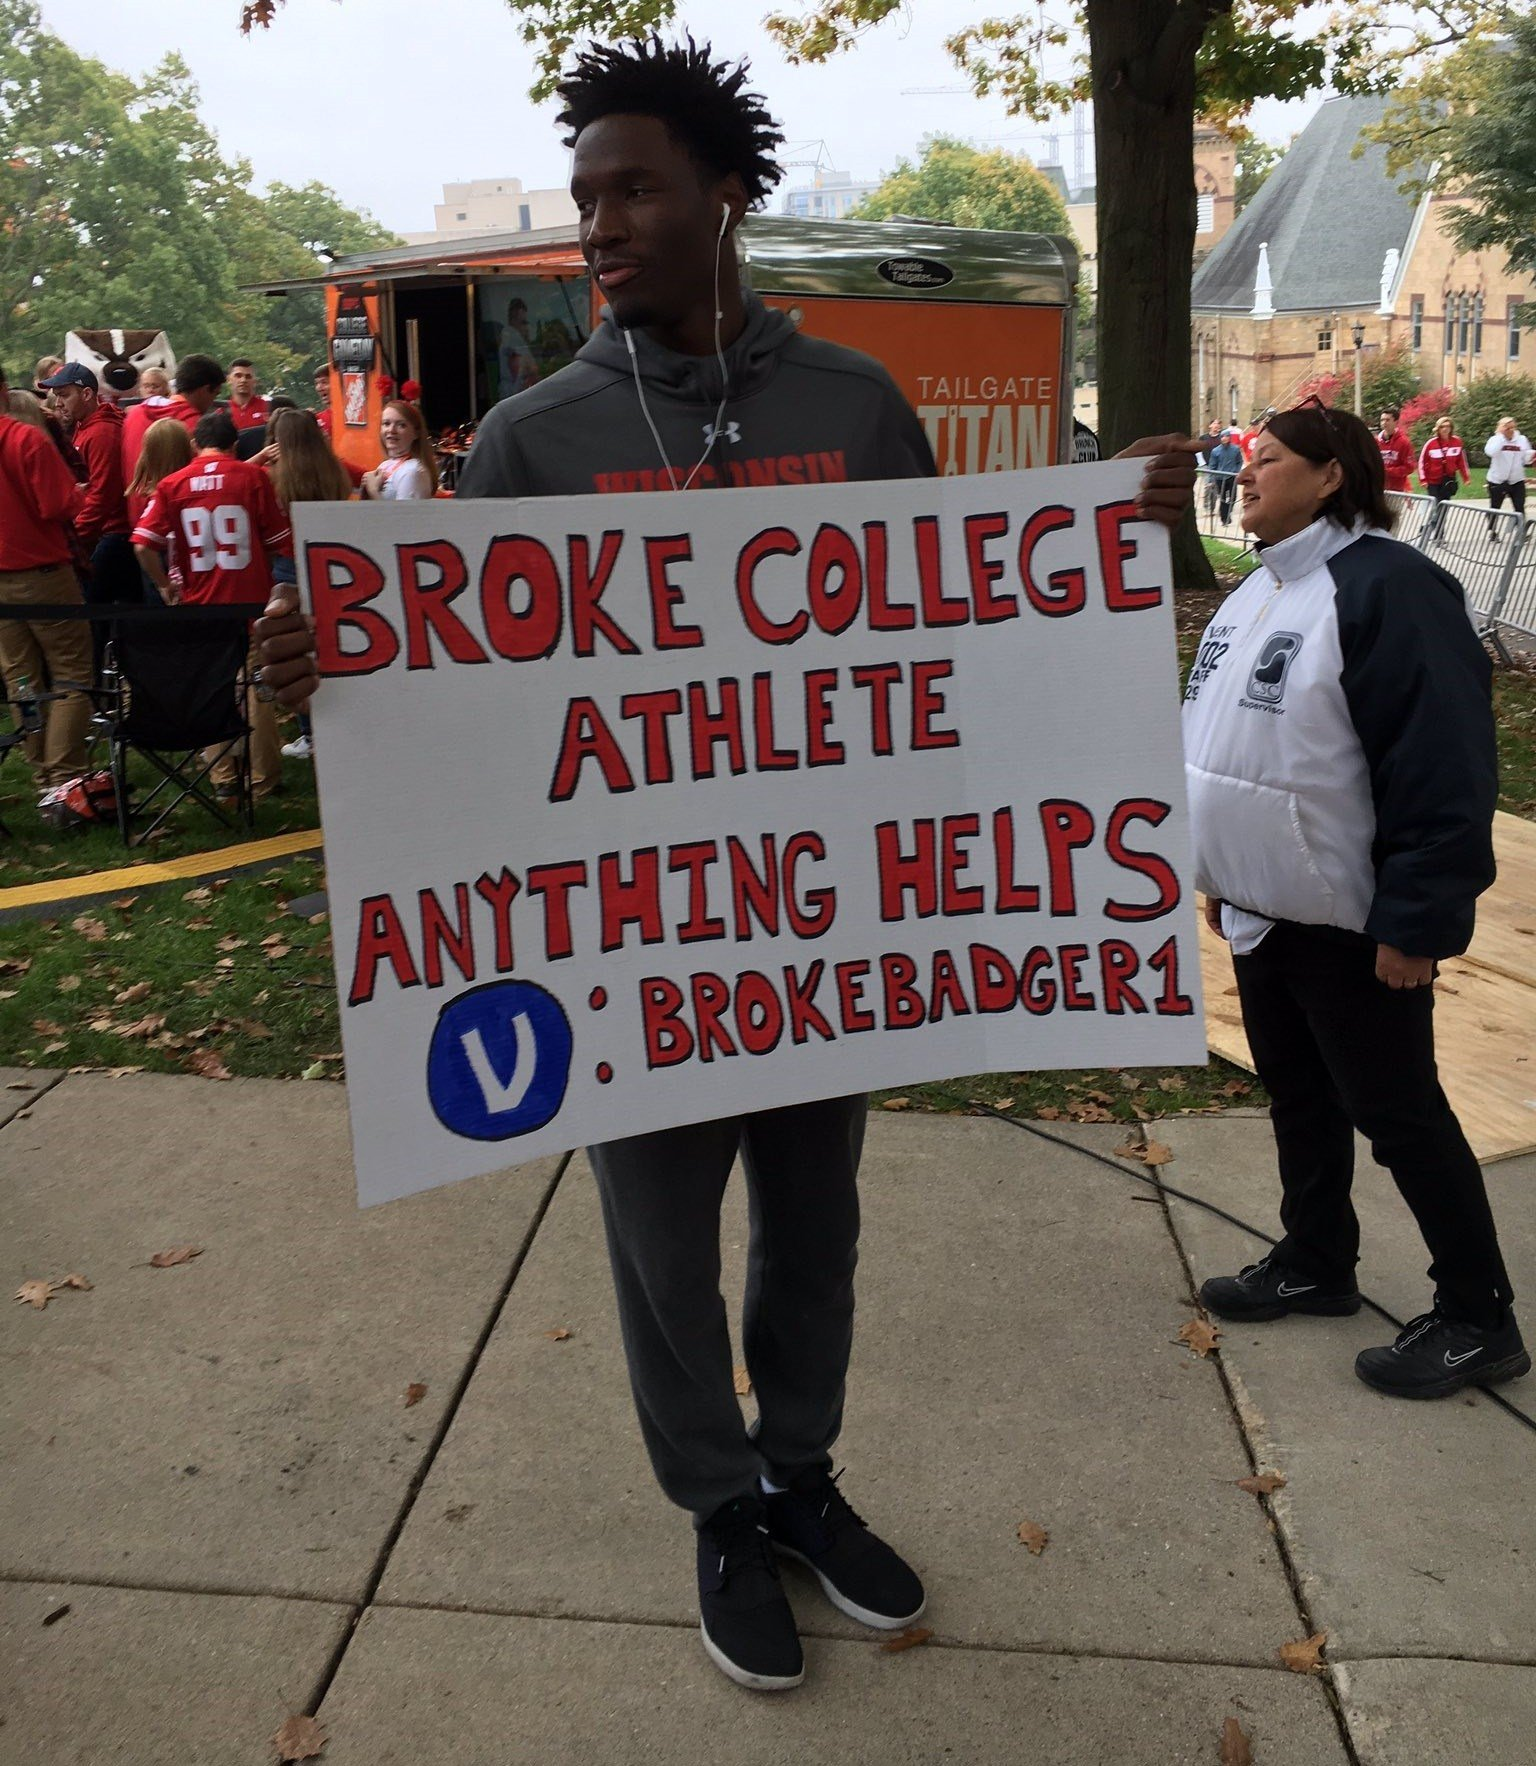 uw s nigel hayes makes statement sign raises money for loc courtesy wi state journal